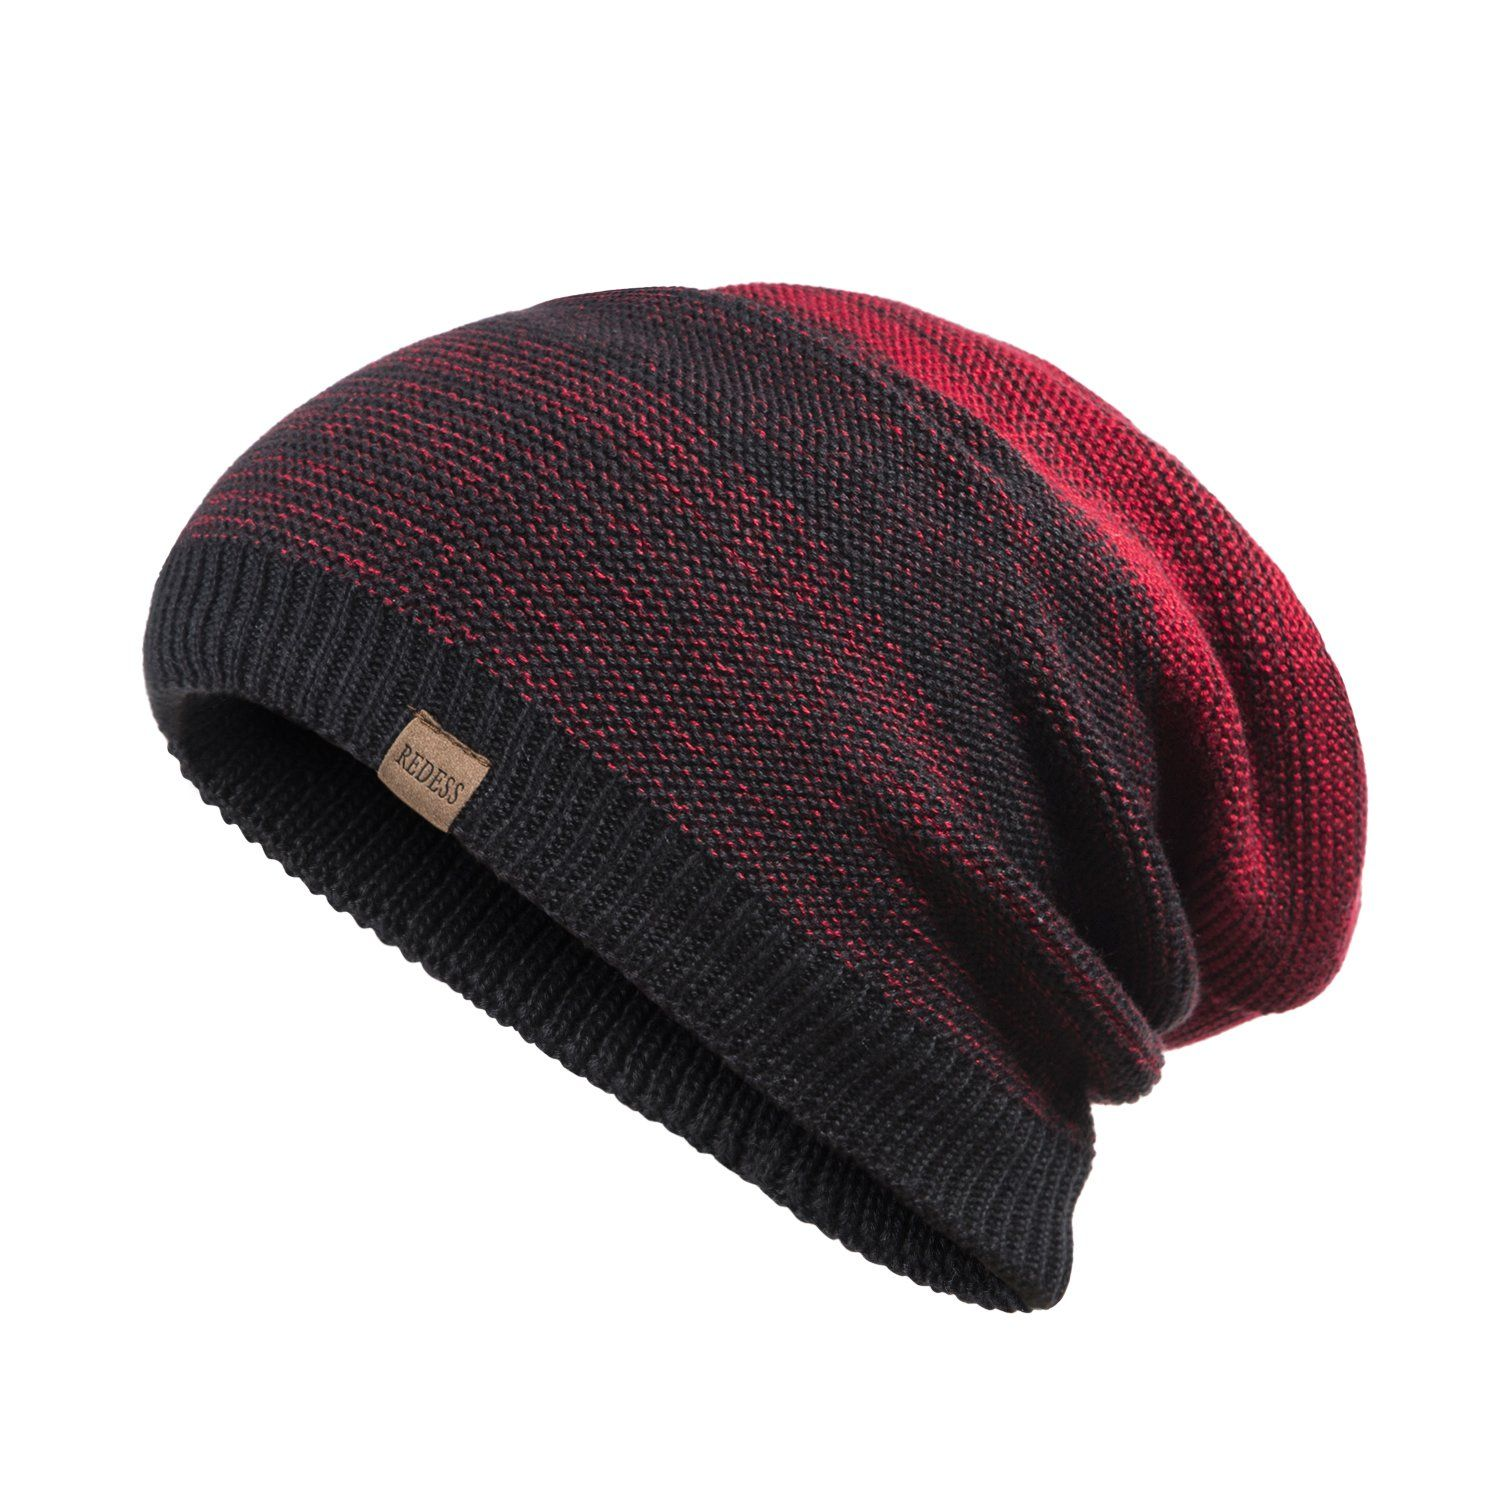 8749684cb84 REDESS Slouchy Long Oversized Beanie Hat for Women and Men Variy Styles and  Colors Fleece Lined